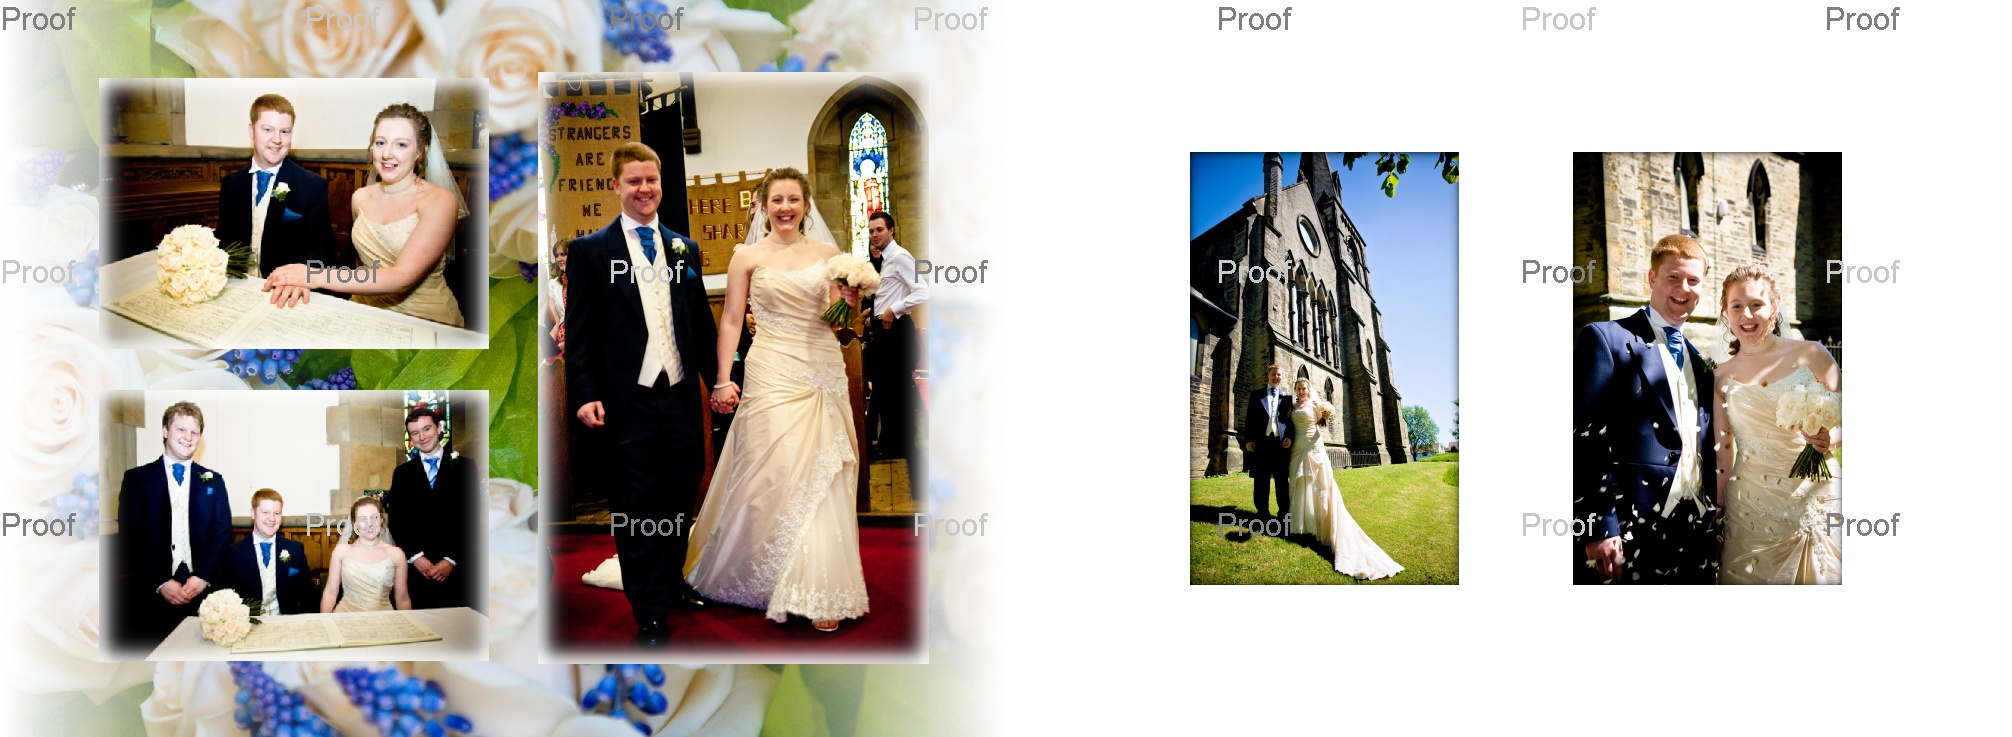 end of church wedding formalities. pages 20-21 reel Life Photos wedding storybook album